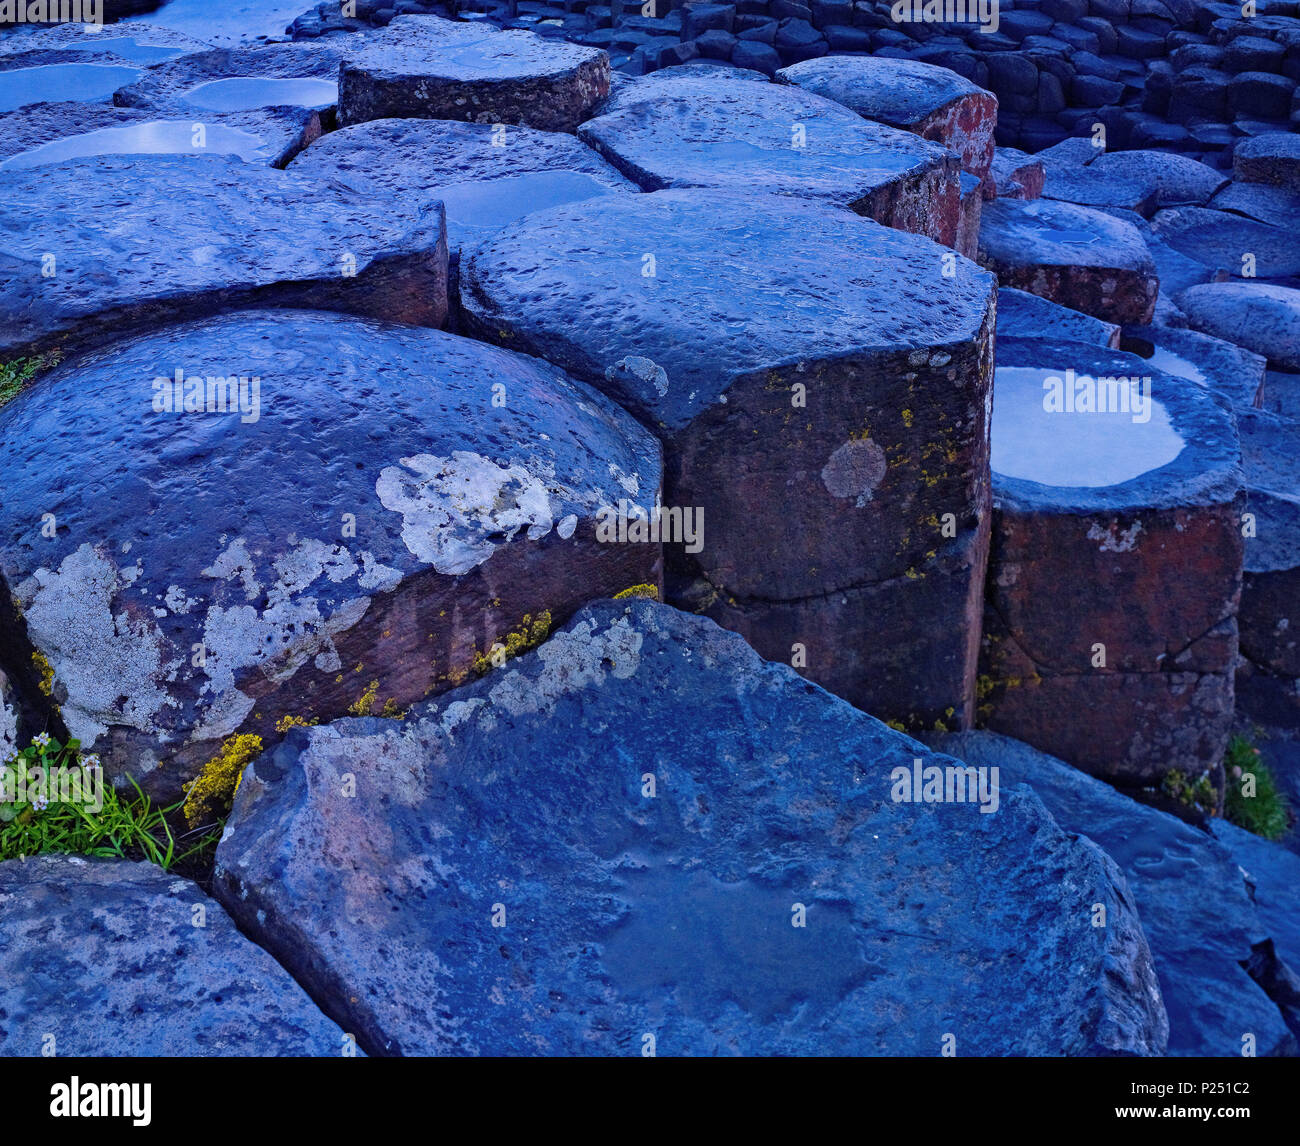 Northern Ireland, Antrim, Causeway Coast, basalt rock of Giants Causeway in evening mood, blue hour, UNESCO world nature heir, - Stock Image